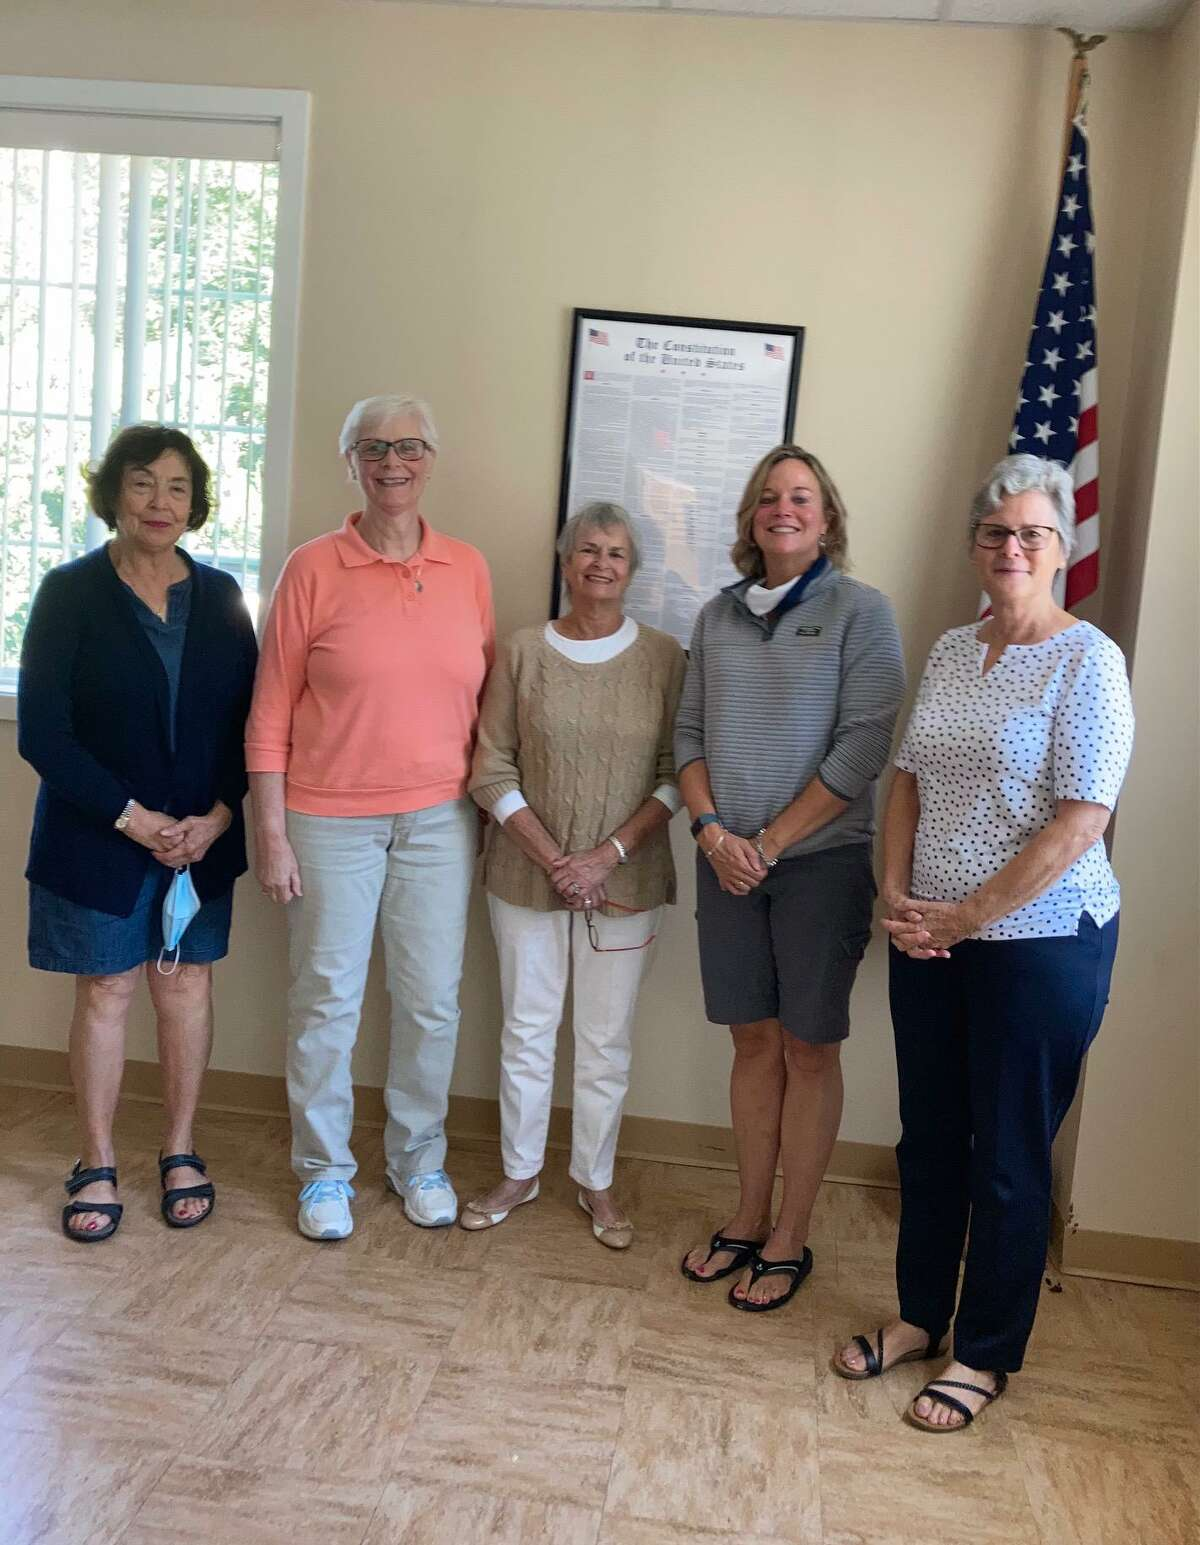 Members of the Brooks - Green Woods Chapter of The Daughters of the American Revolution welcomed new members at their first in-person meeting of the year, held Sept. 11. The new members are Donna Vincenti, Victoria Elliot, Elaine Sederquist, Erik Thomas, Jacque Schiller, Courtney Kane, Megan Keefe and Lynne Dezzani. Pictured are Sederquist, Hulbert, Chapter Registrar, Lynne Dezzani, Keefe, and Donna Colavecchio, Chapter Regent.